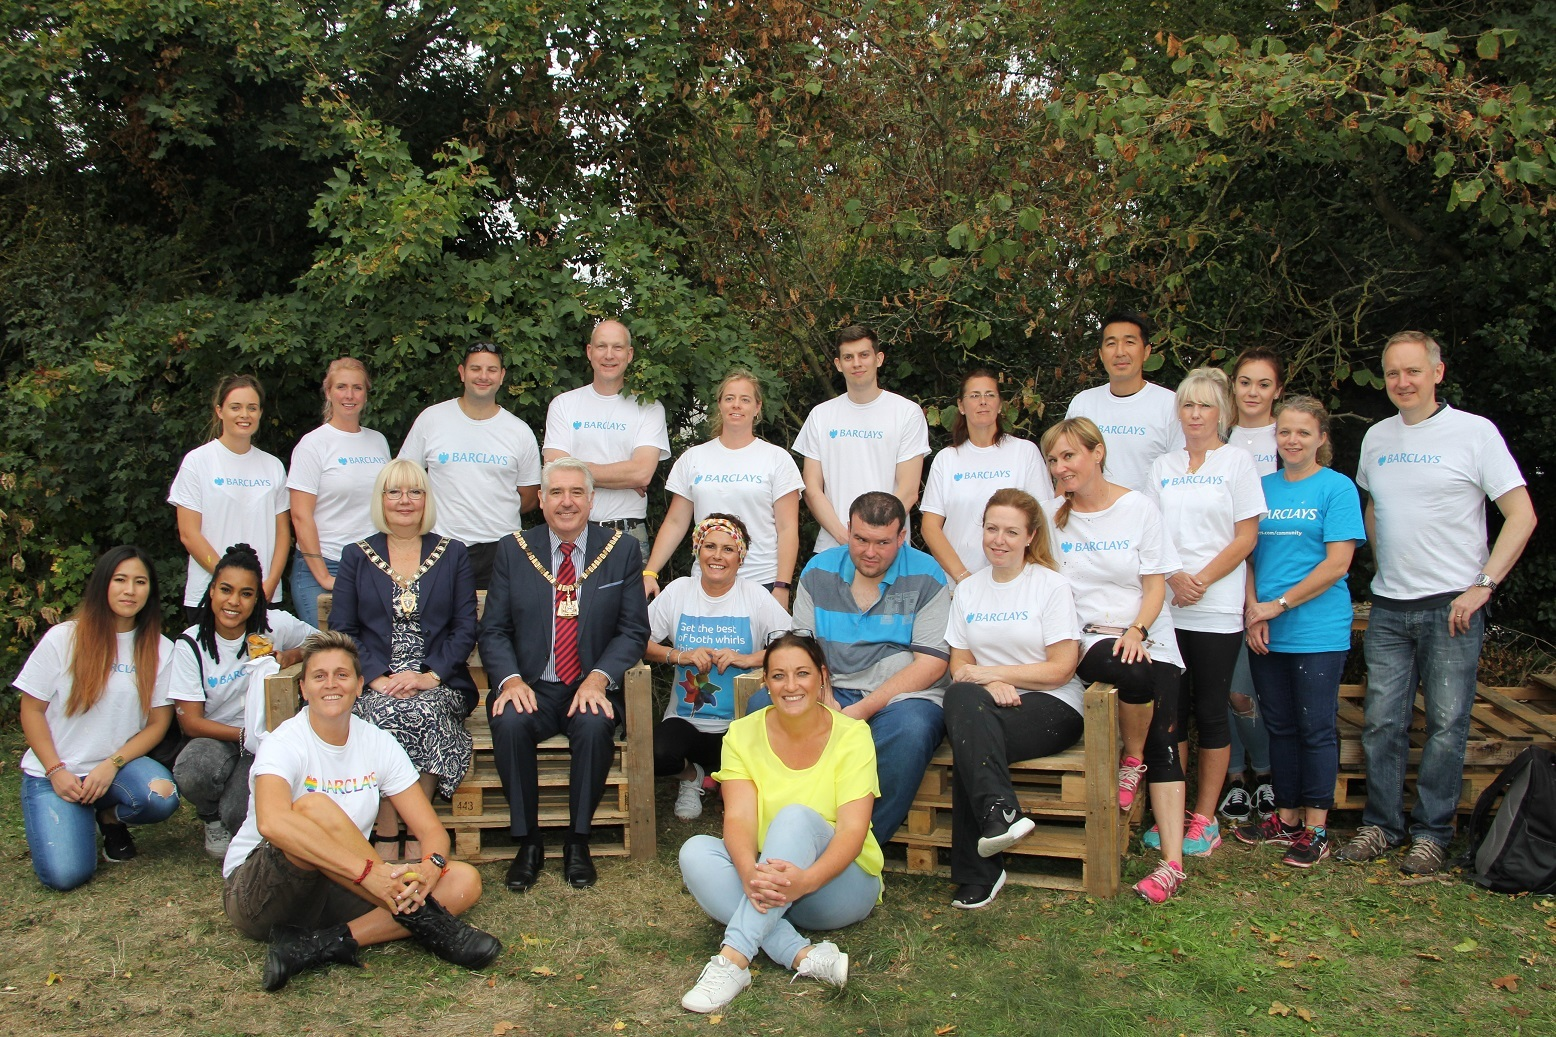 Ken Boyce Centre Barclays volunteering day 2018